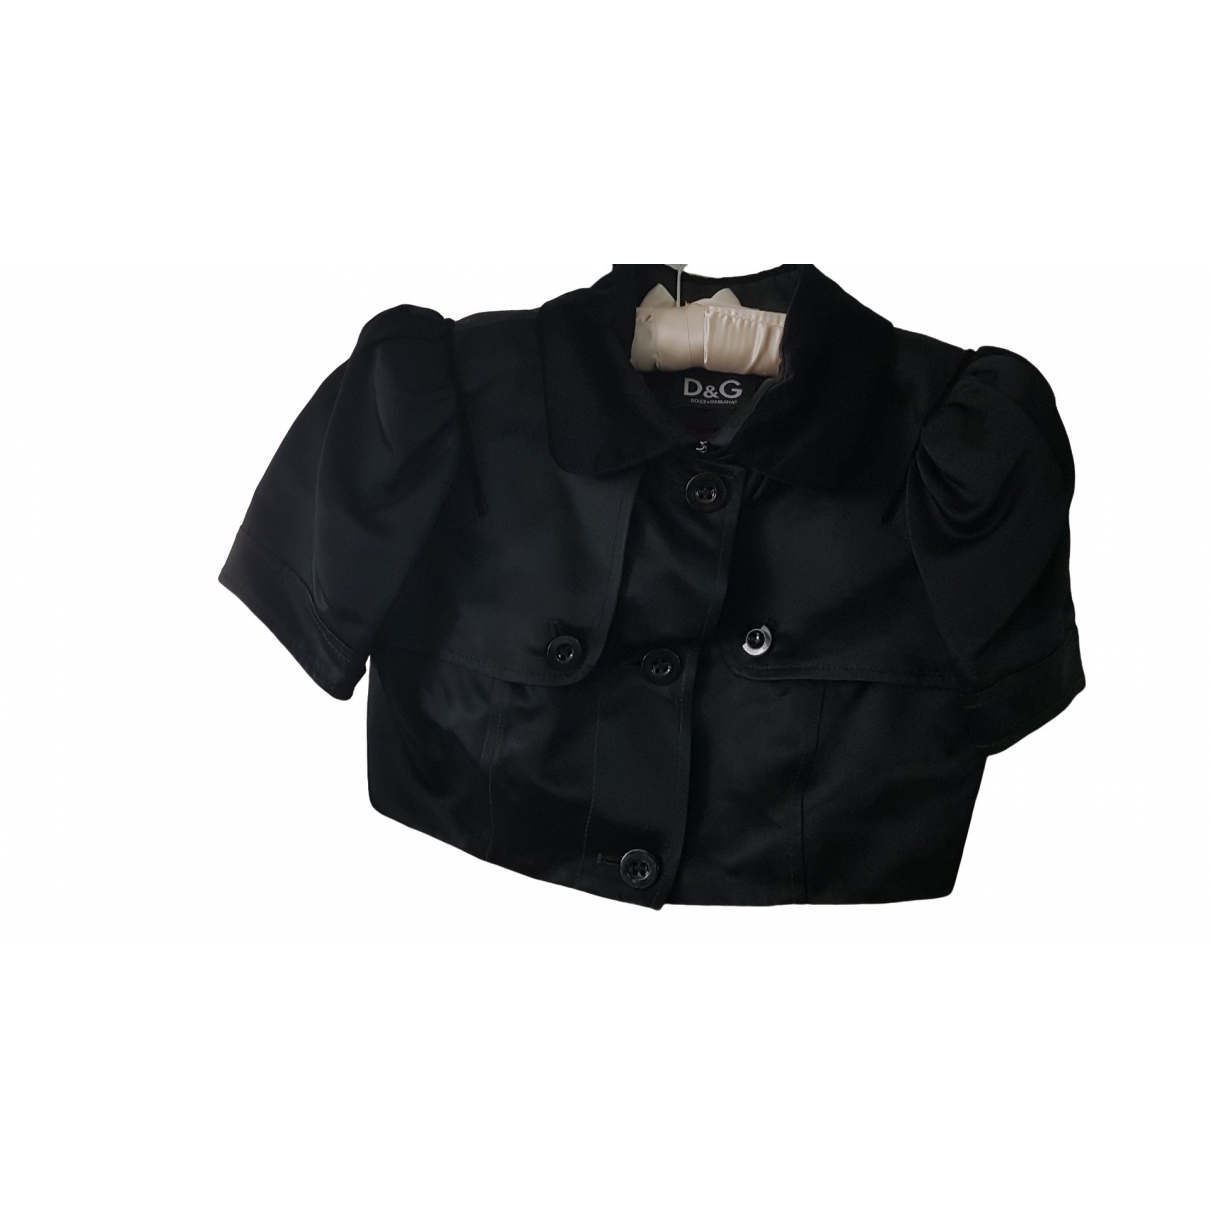 D&g \N Black Cotton jacket for Women 38 FR